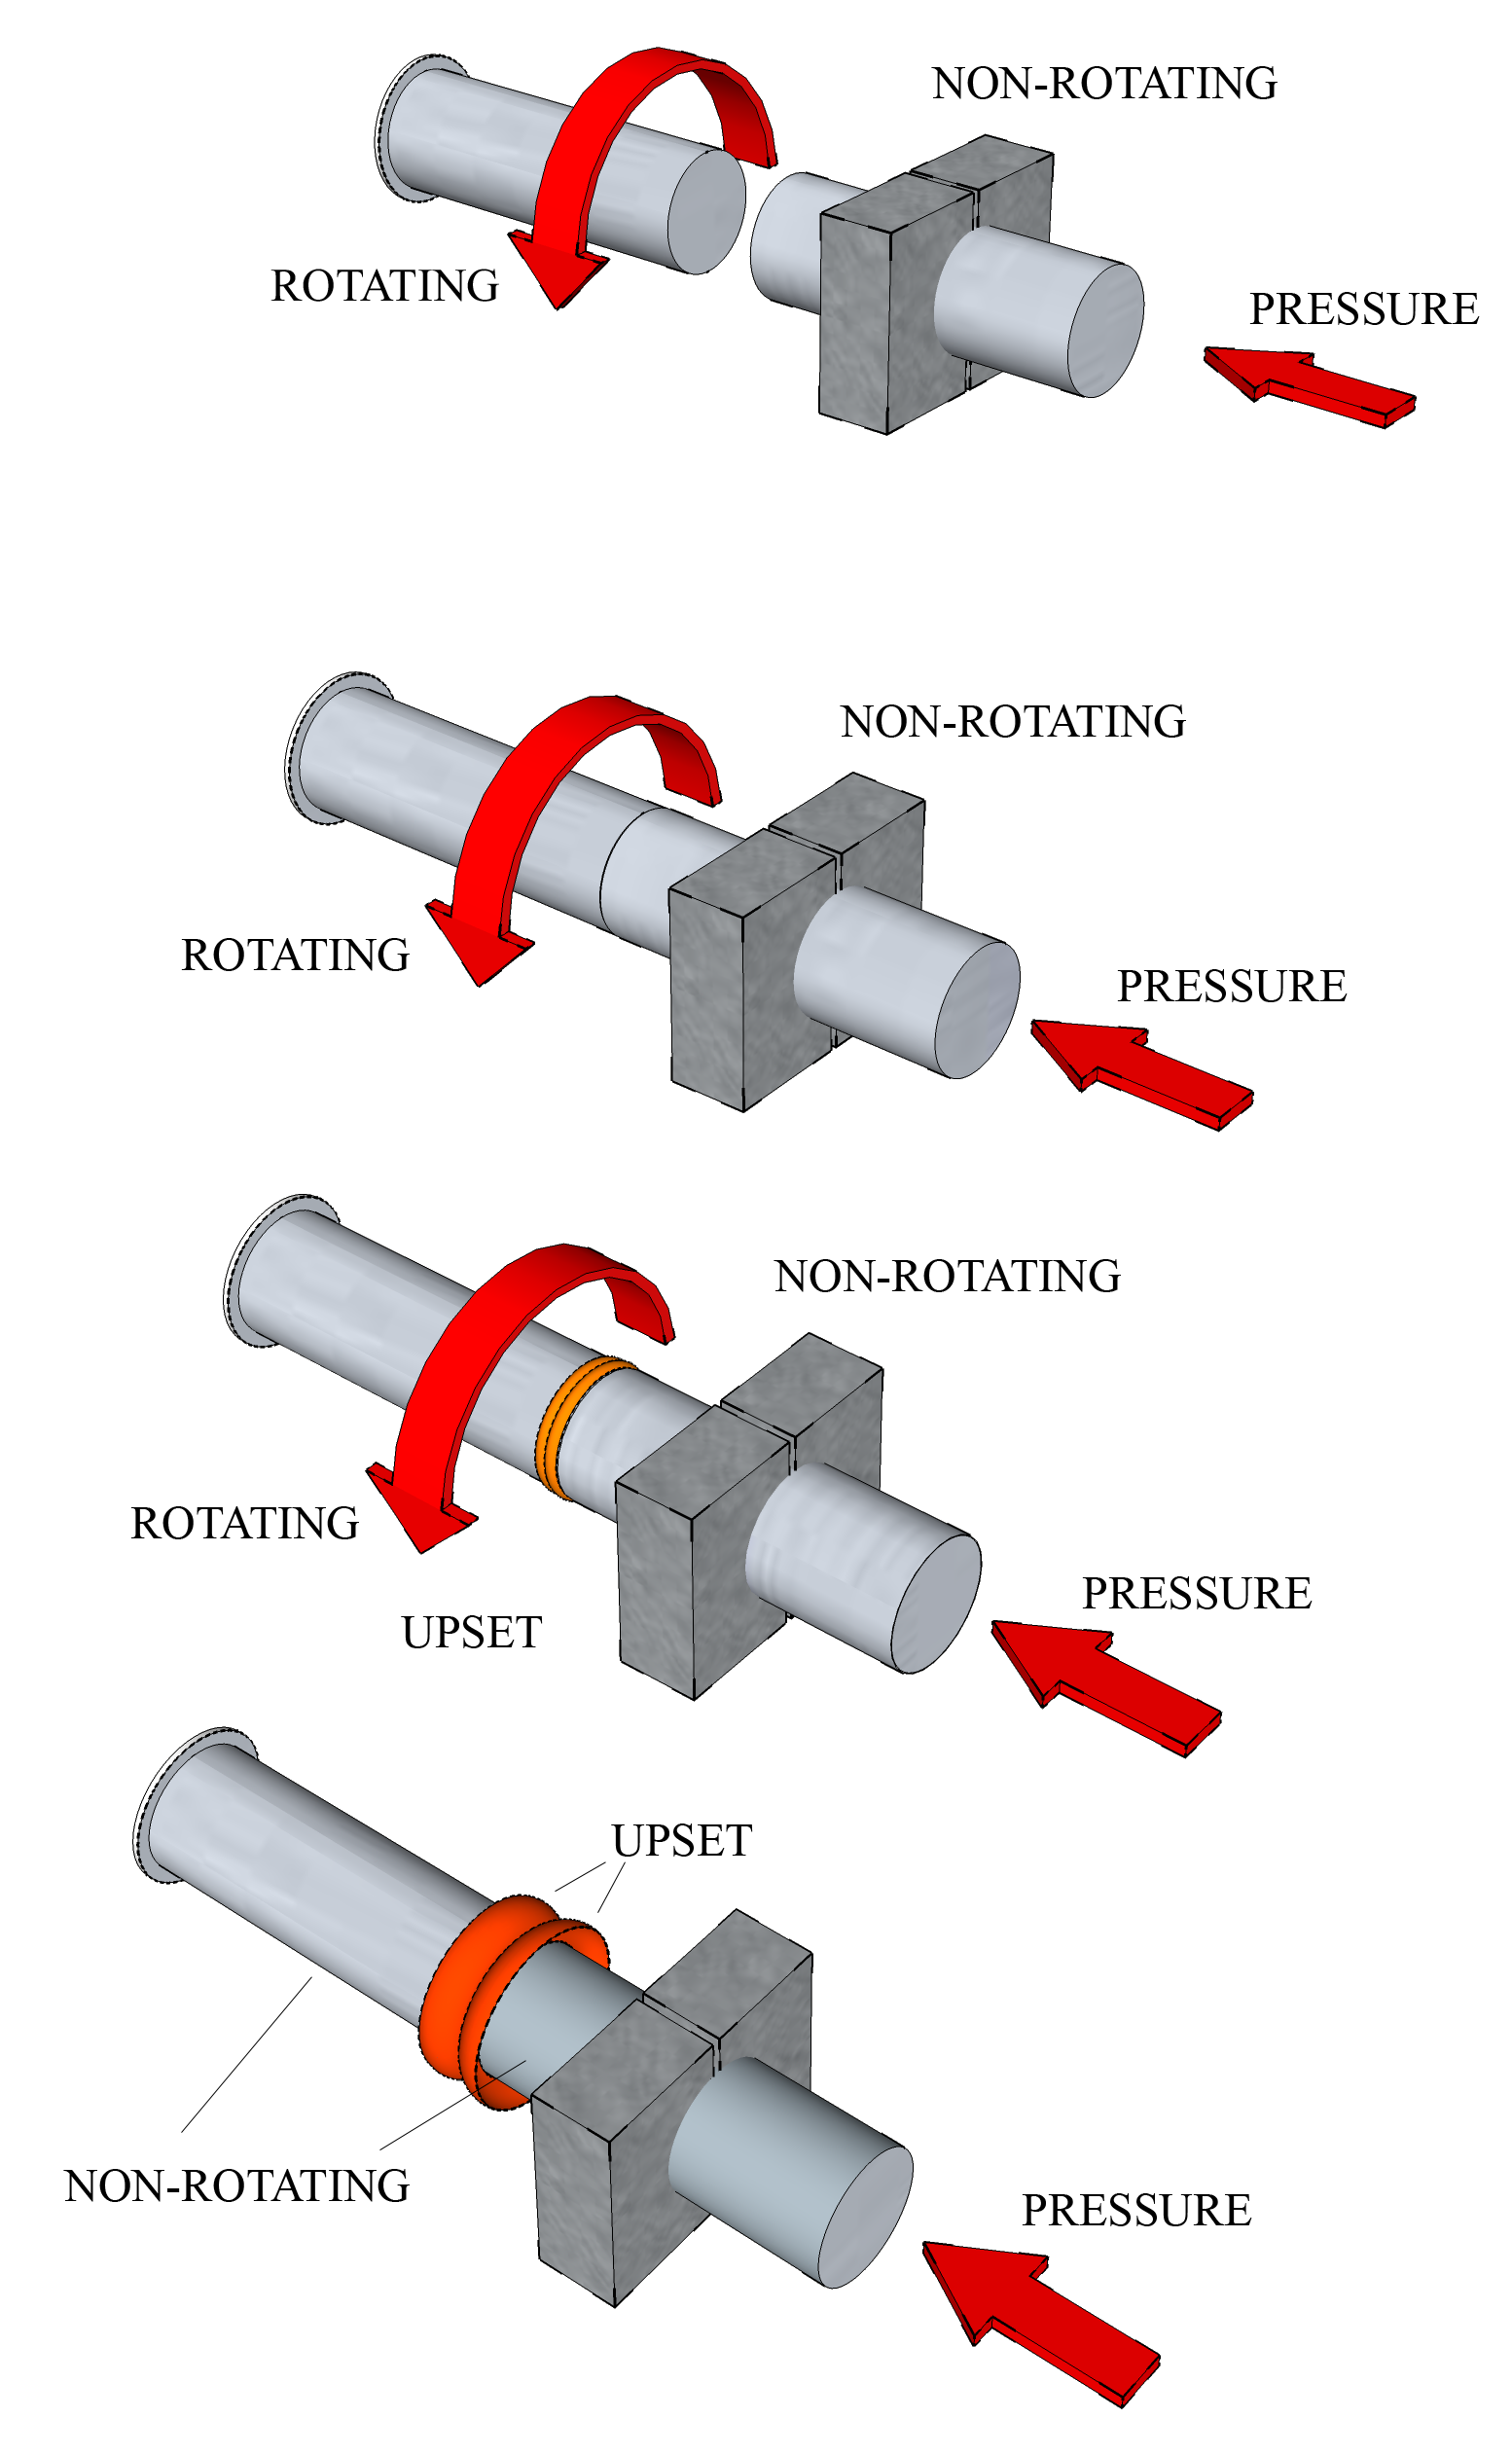 hight resolution of how friction welding works nice diagrams showing the basic principles